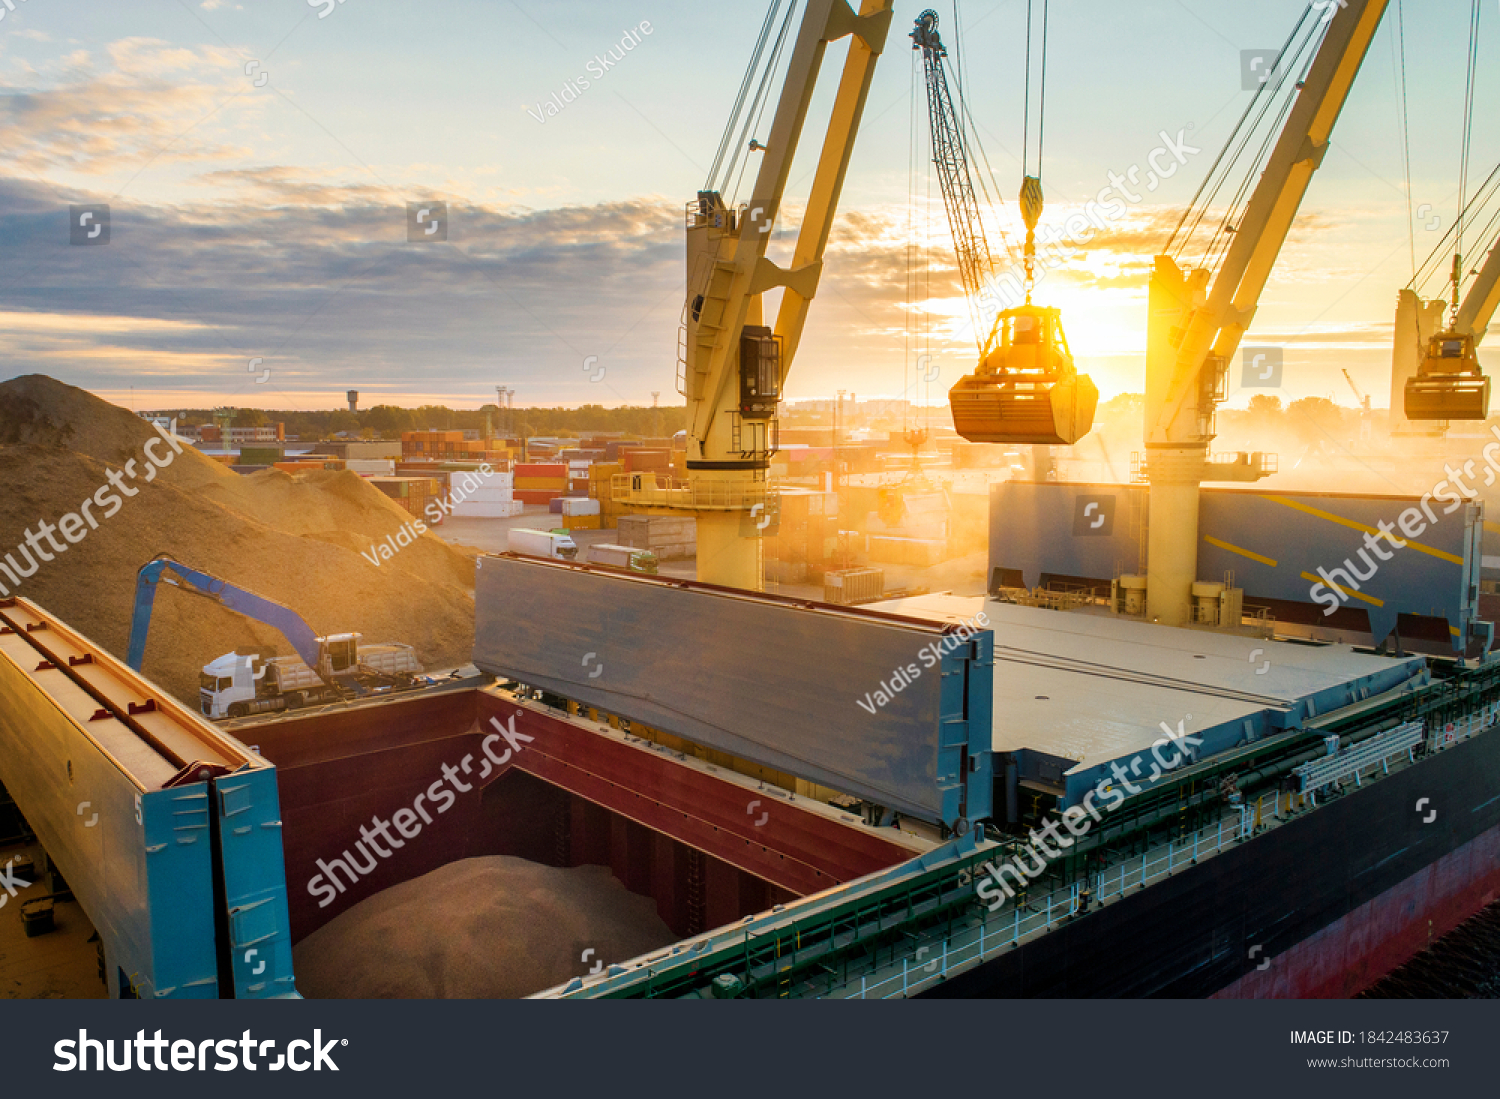 Large international transportation vessel in the port, loading grain during sunrise for export in the sea waters. #1842483637